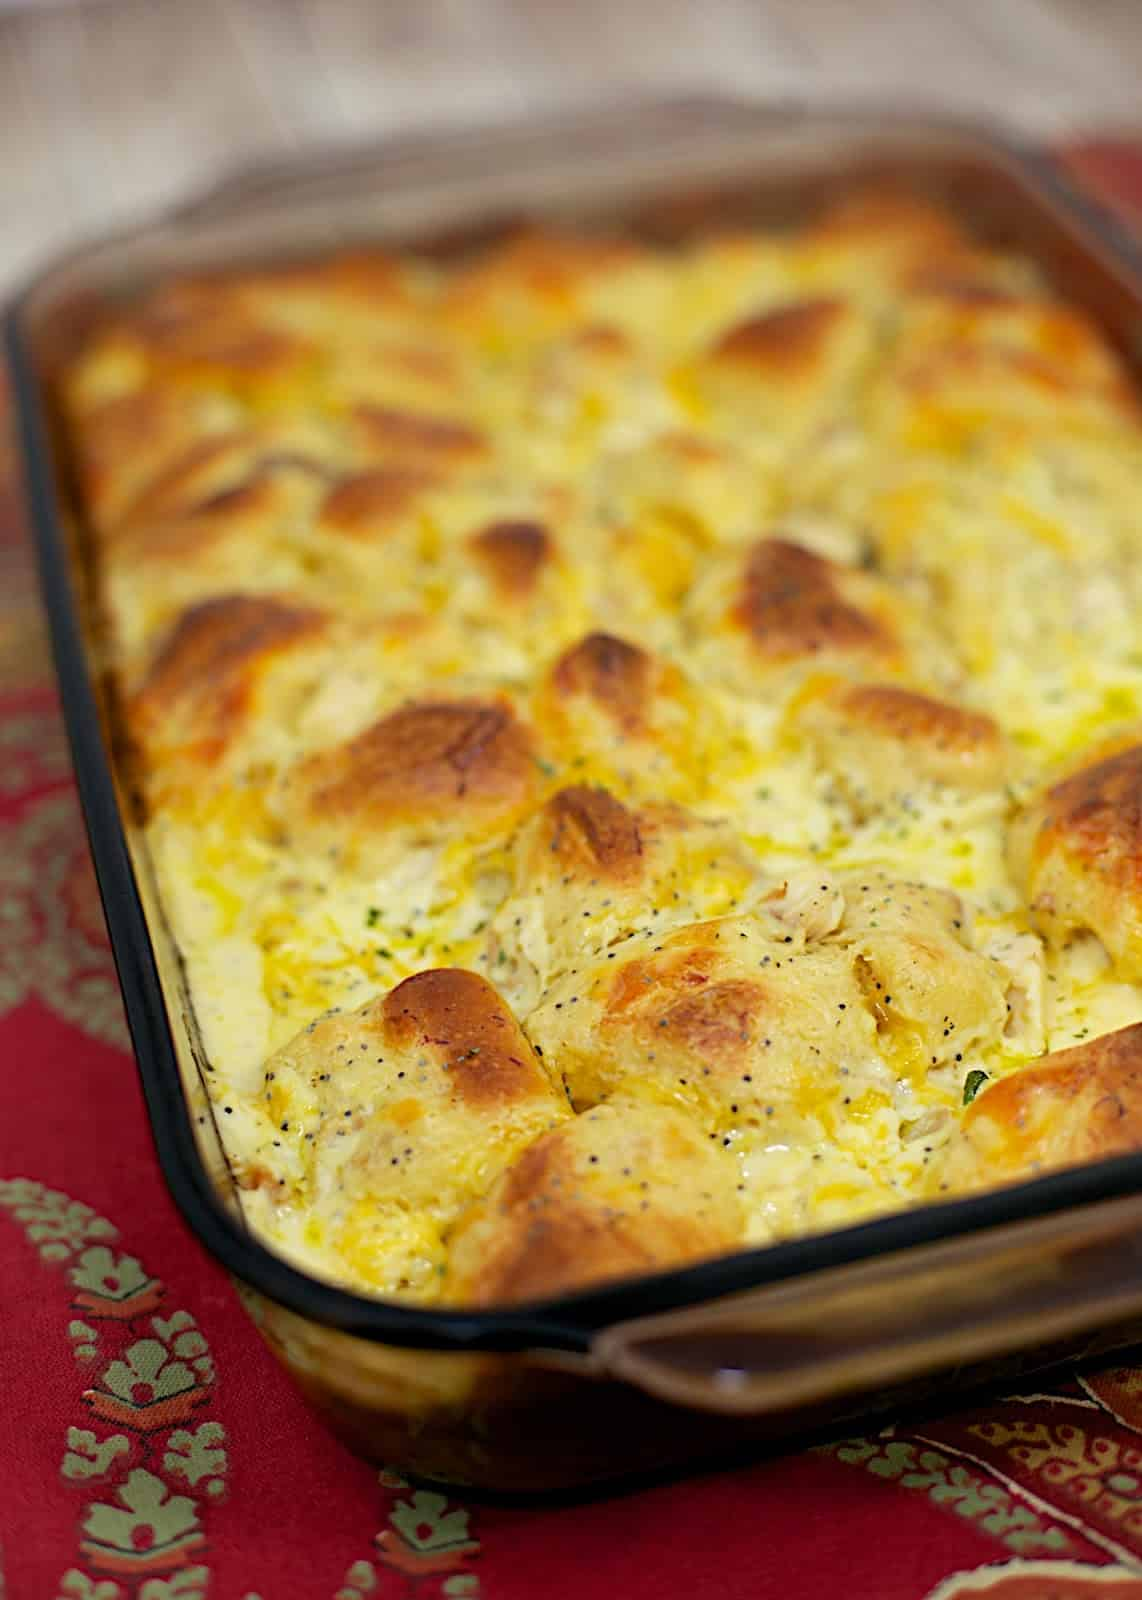 Poppy Seed Chicken Bubble Up - our favorite chicken casserole turned into a bubble up - the best of both worlds! Ready in 30 minutes! Everyone loves this easy chicken casserole recipe! Chicken, sour cream, cream of chicken soup, cheddar cheese, poppy seeds tossed with refrigerated biscuits. SO good!!! Such a family-friendly casserole recipe. Kids go crazy over this!